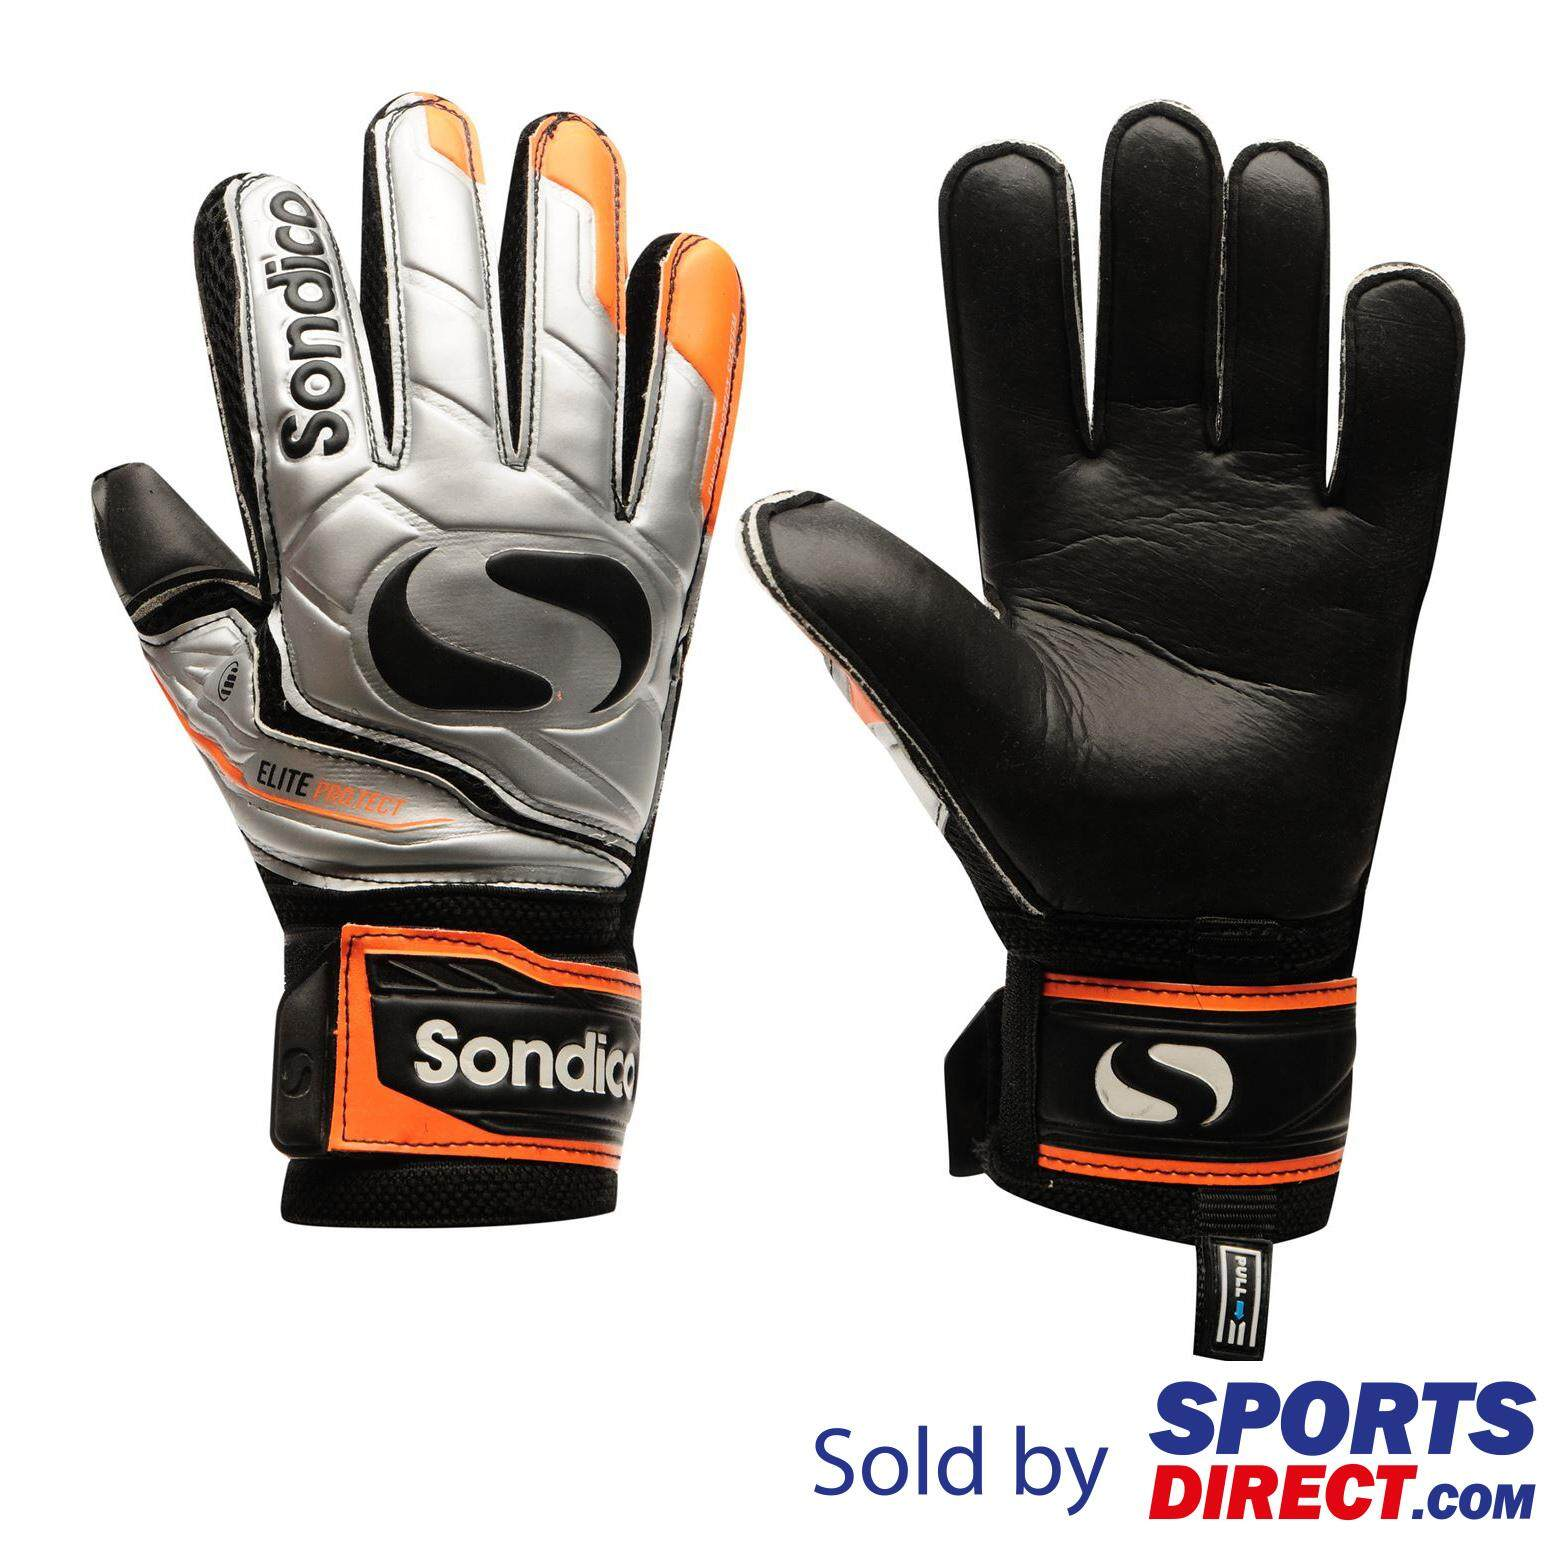 7402fa5ddb76 Goalkeeper Gloves - Buy Goalkeeper Gloves at Best Price in Malaysia ...